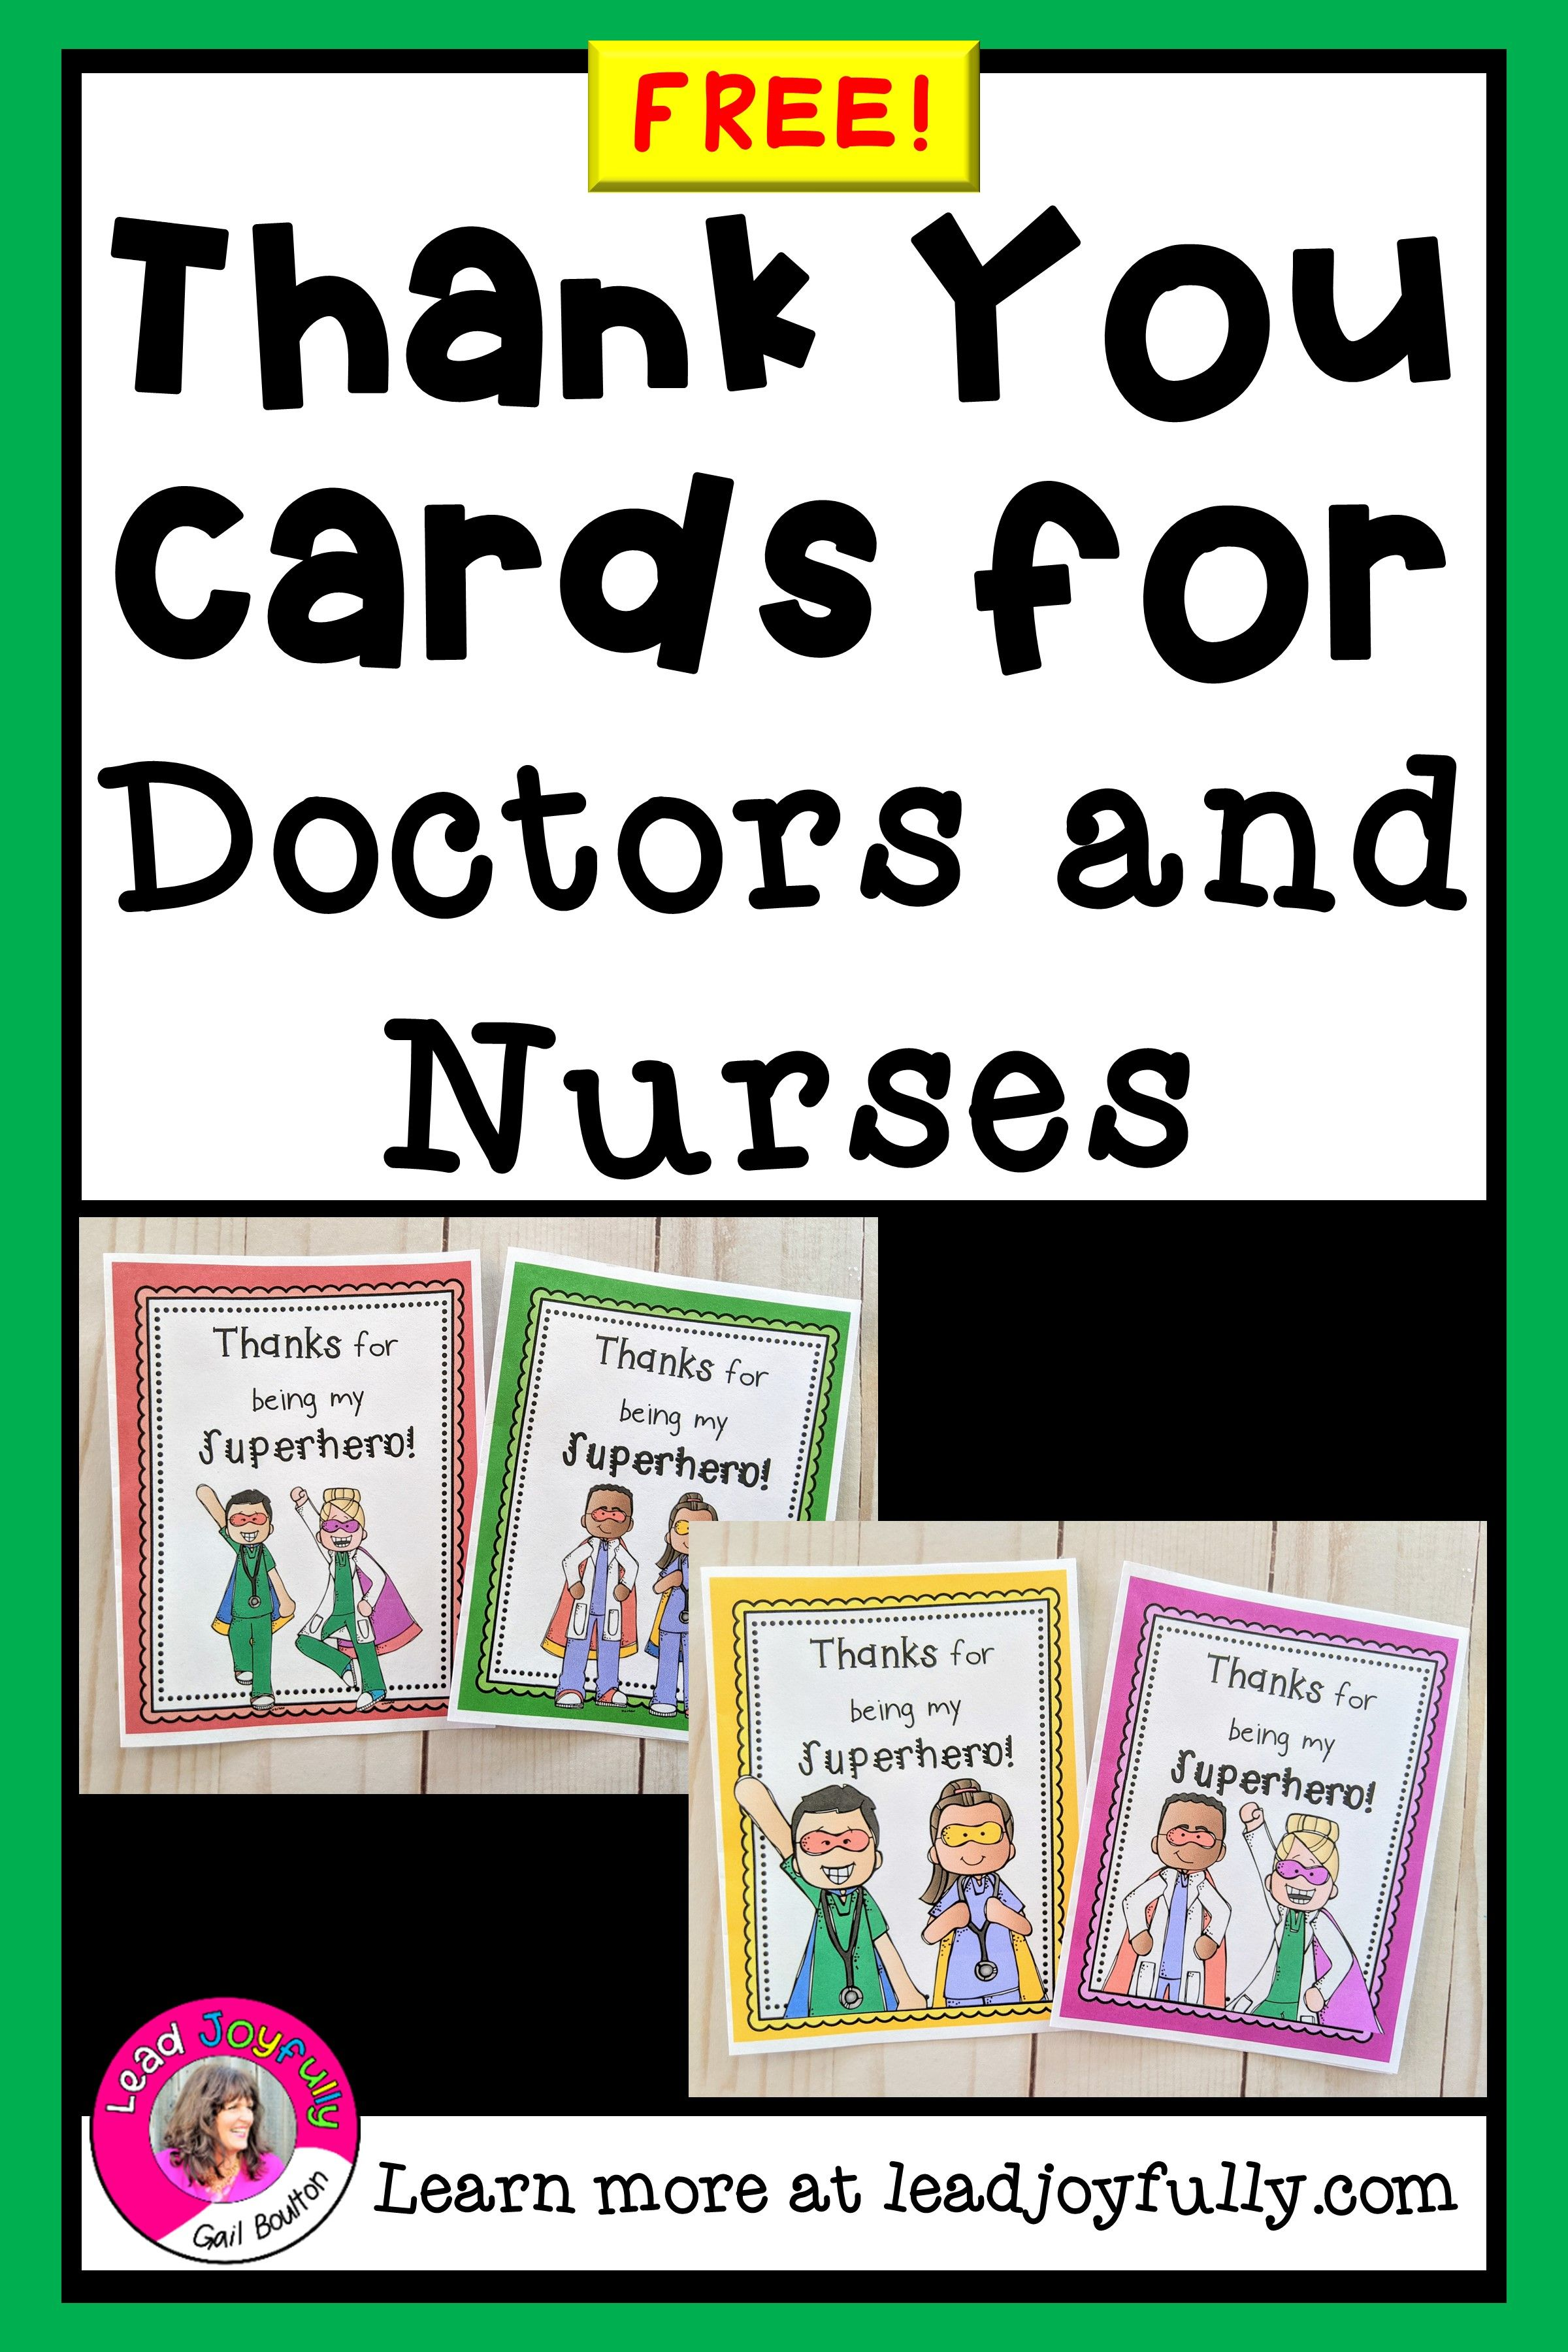 Free Download Thank You Cards For Doctors And Nurses